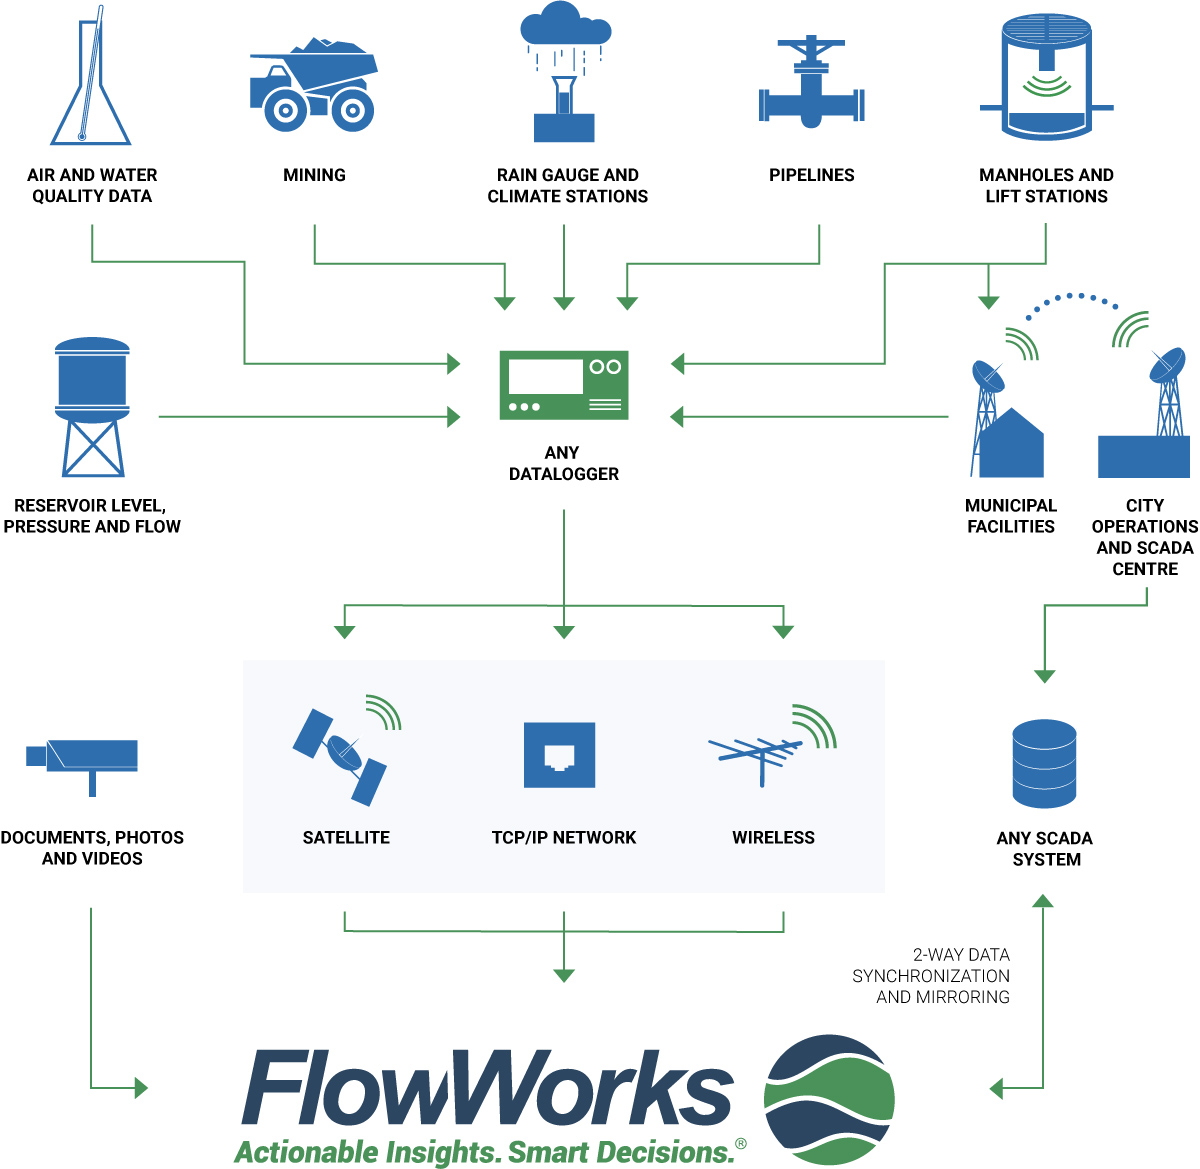 FlowWorks operational infographic